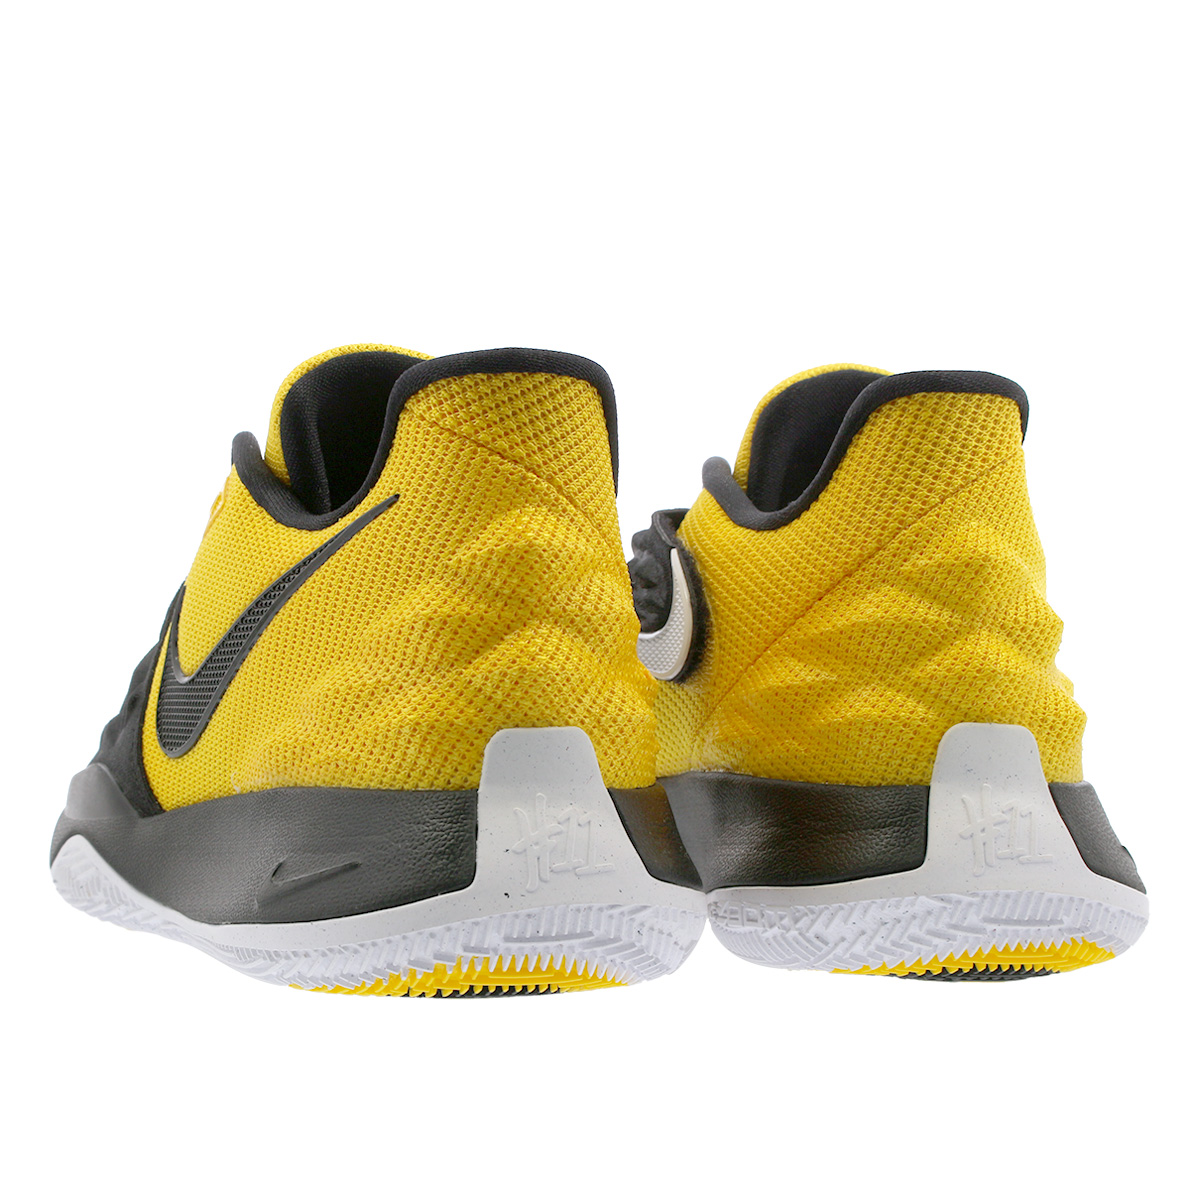 c777f8488ccb clearance nike kyrie 4 low nike chi lee 4 low amarillo black ao8979 700  46345 5c411